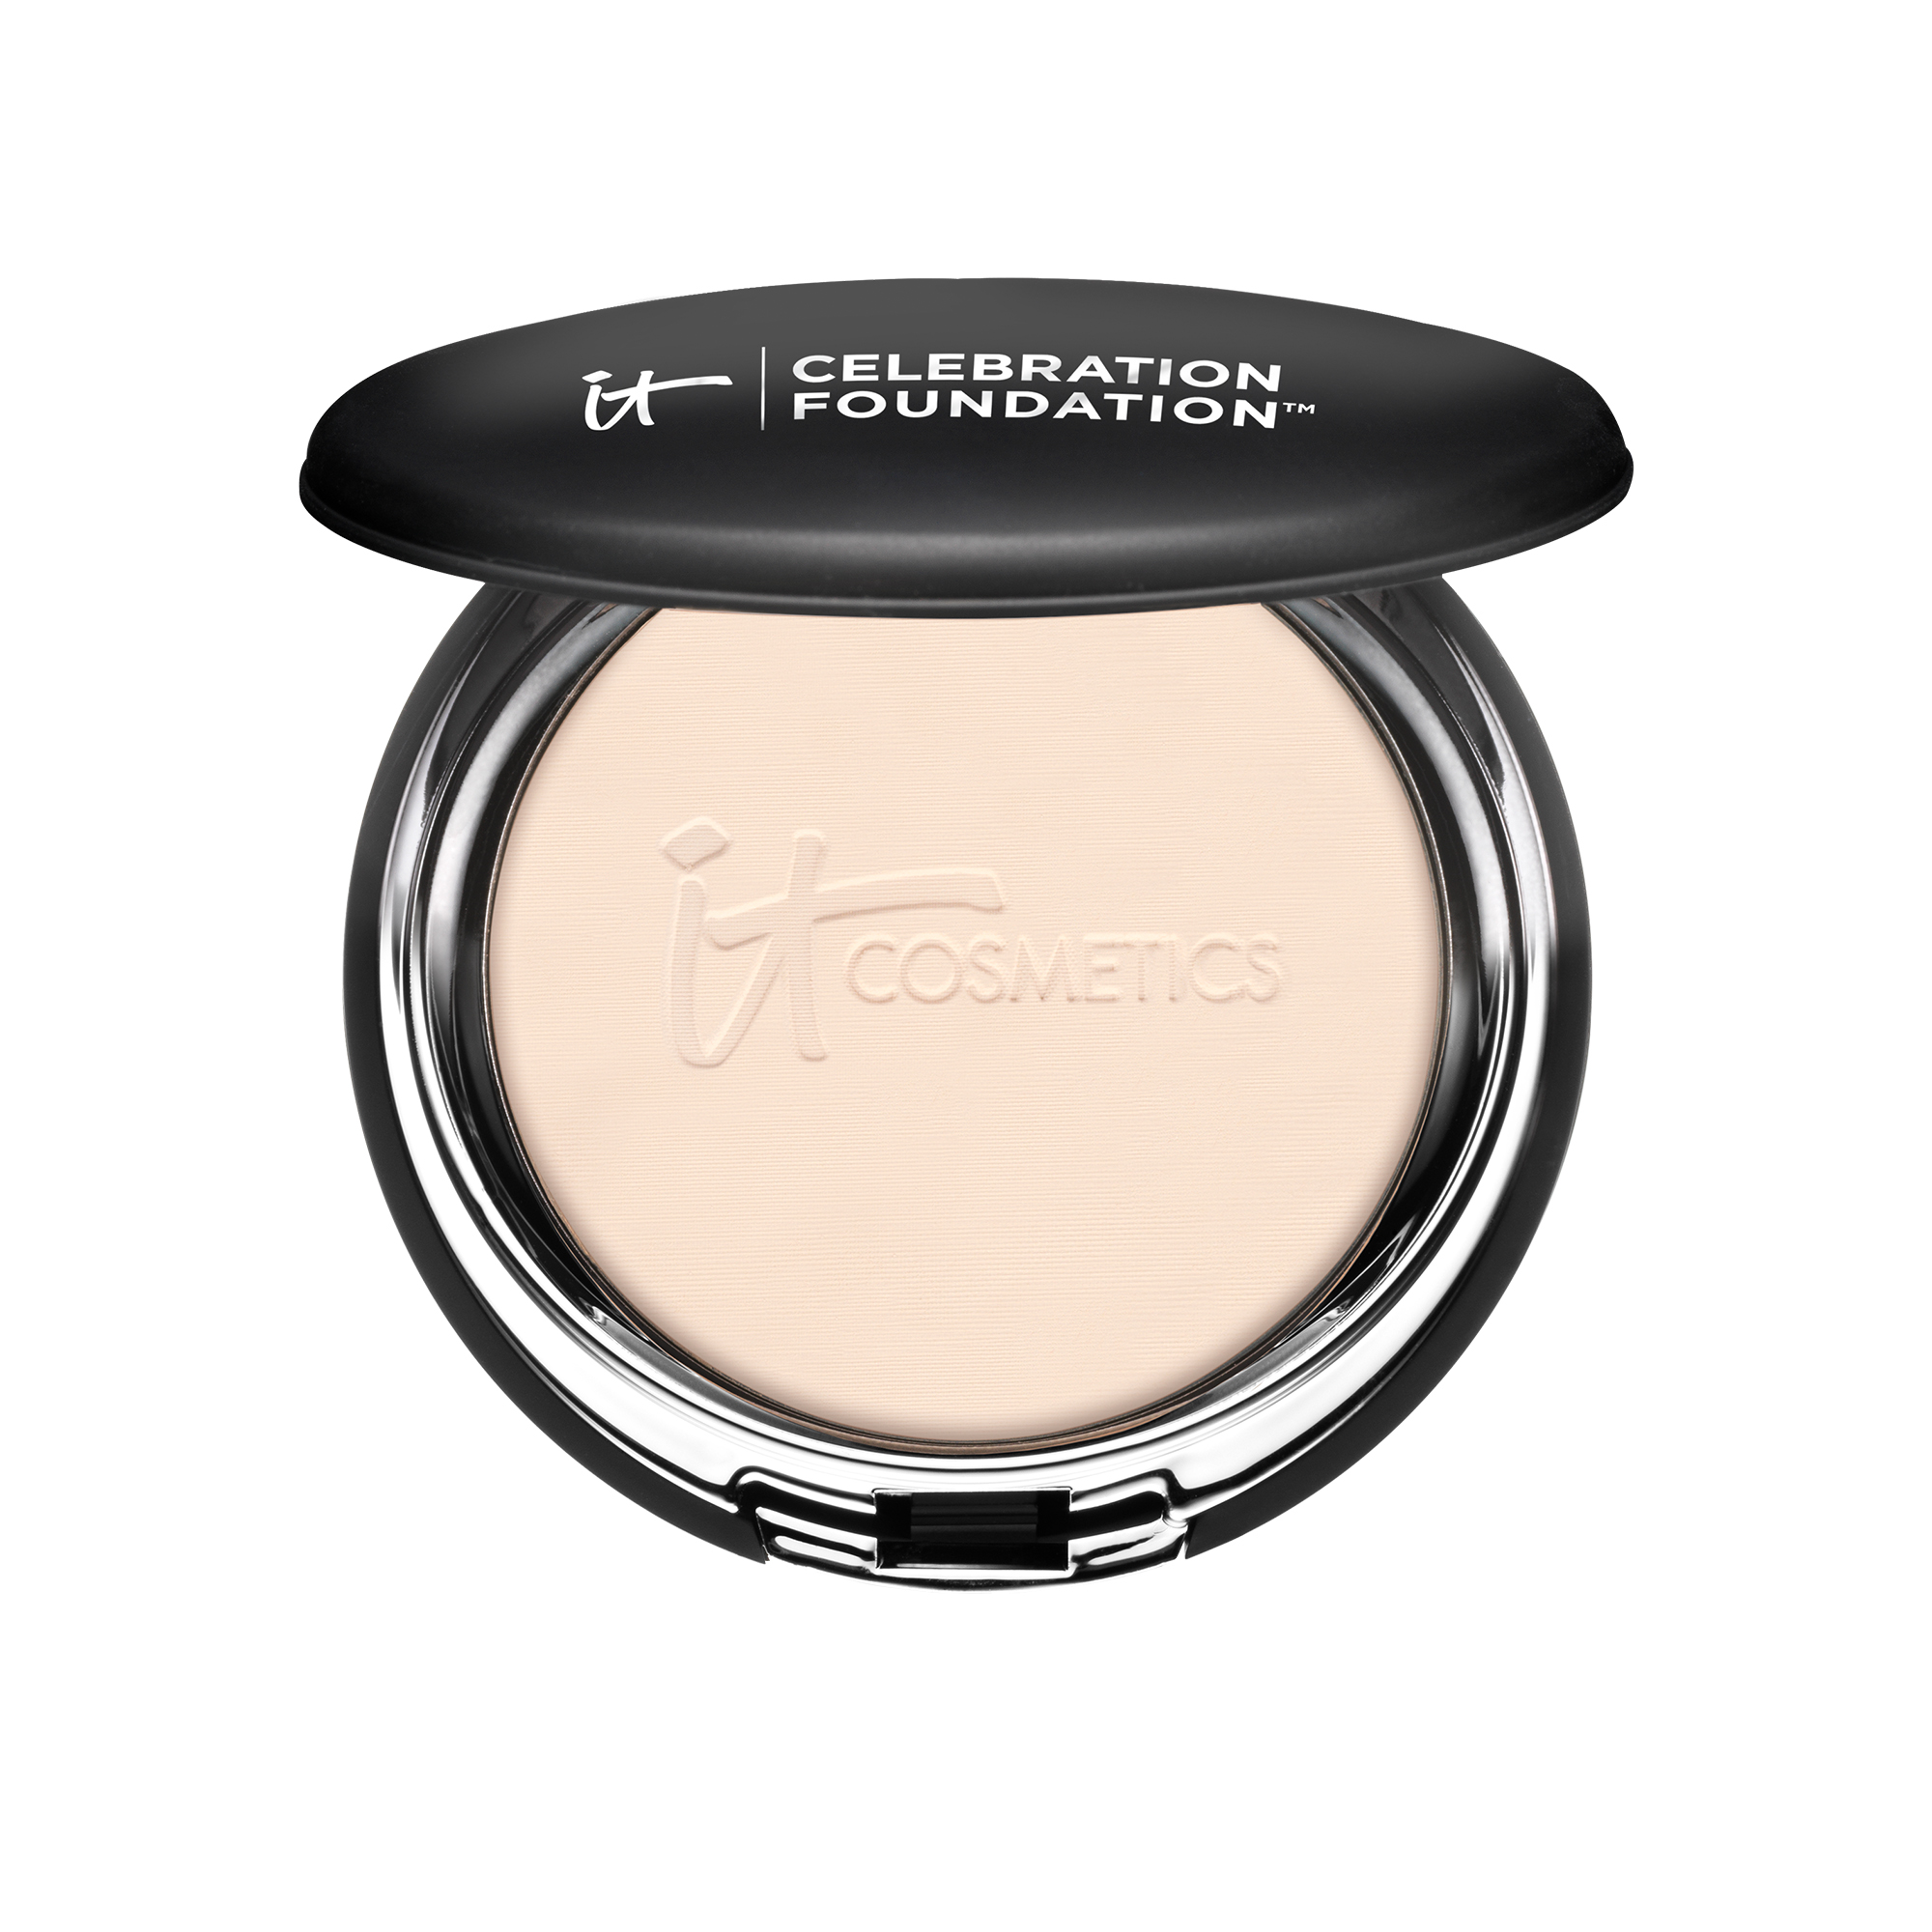 Celebration Foundation™ Powder Fair